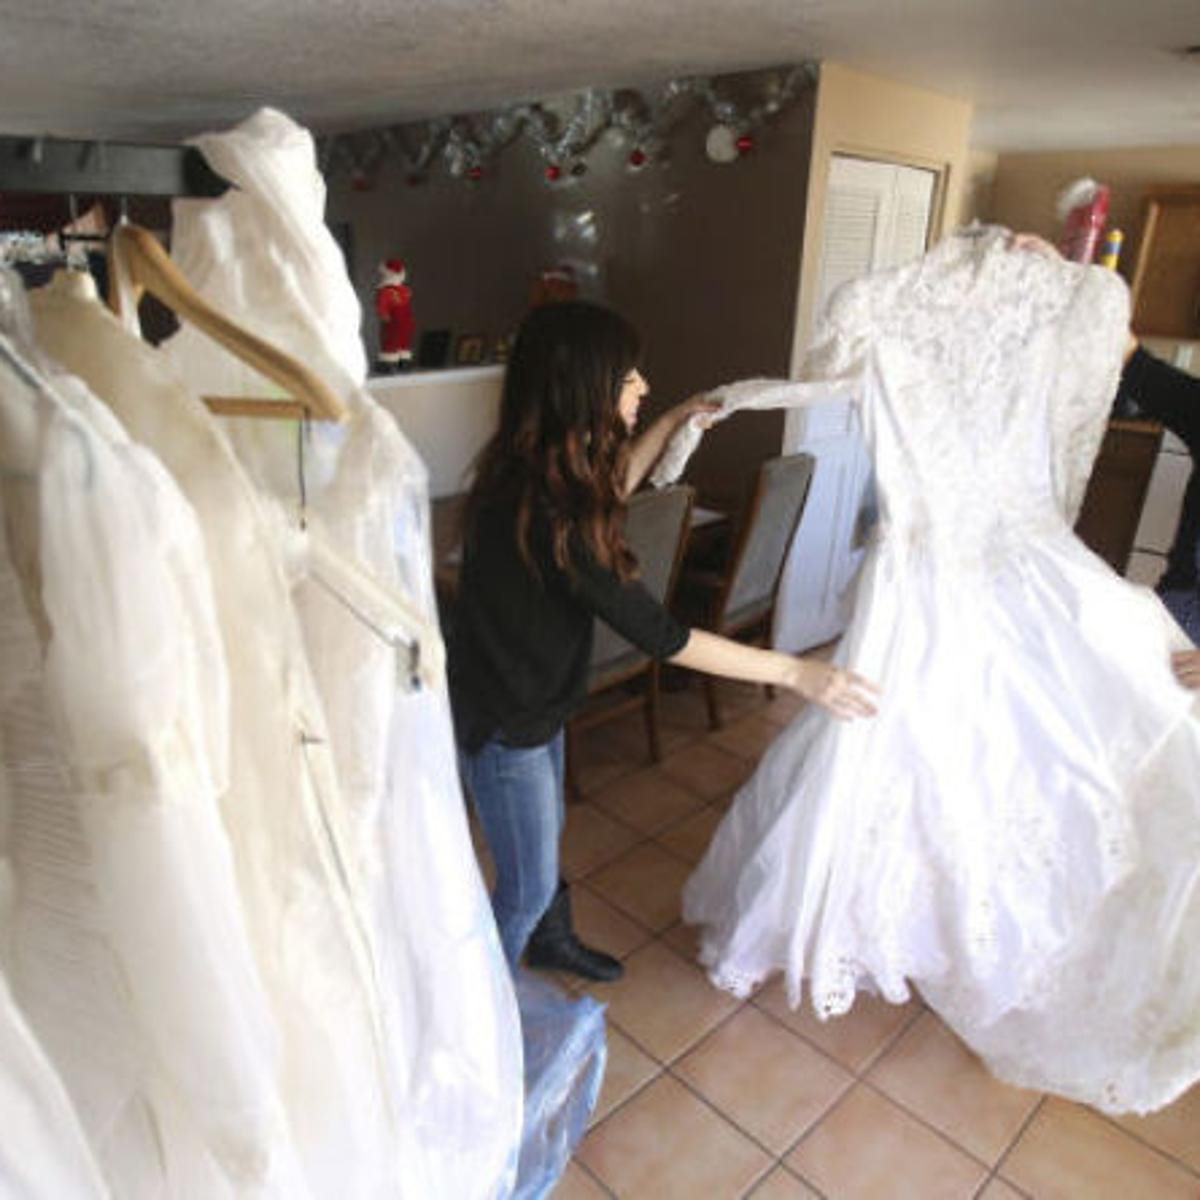 Bridal Resale Boutique To Benefit Victims Of Sex Trafficking News About Tucson And Southern Arizona Businesses Tucson Com,Casual White Beach Wedding Dress